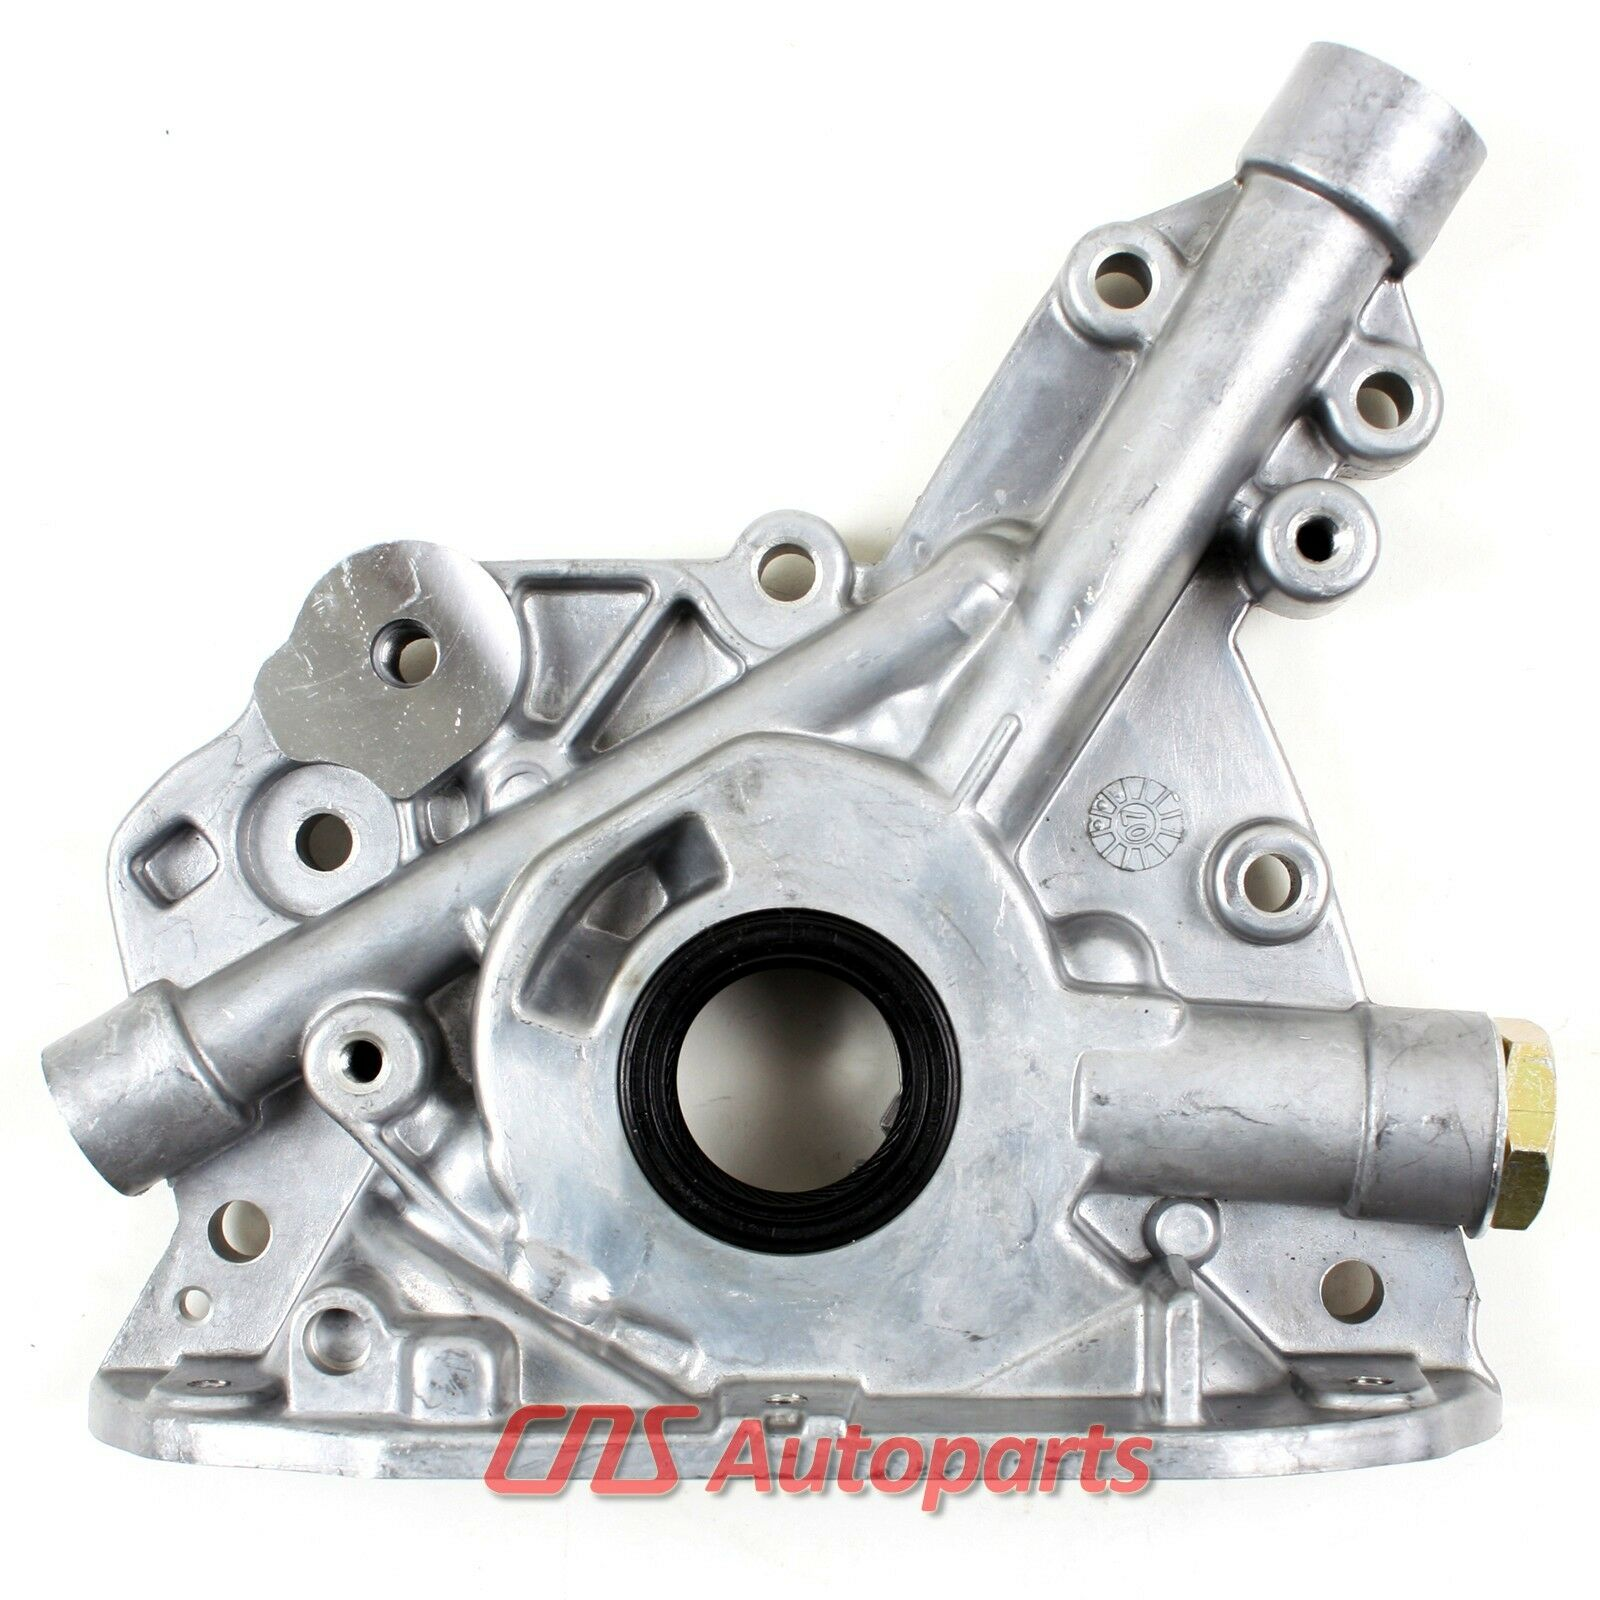 Engine Oil Pump 99 08 Daewoo Lanos A16 Chevy Aveo Aveo5 16l L91 E Leganza Fuel Filter Location 1 Of 1free Shipping